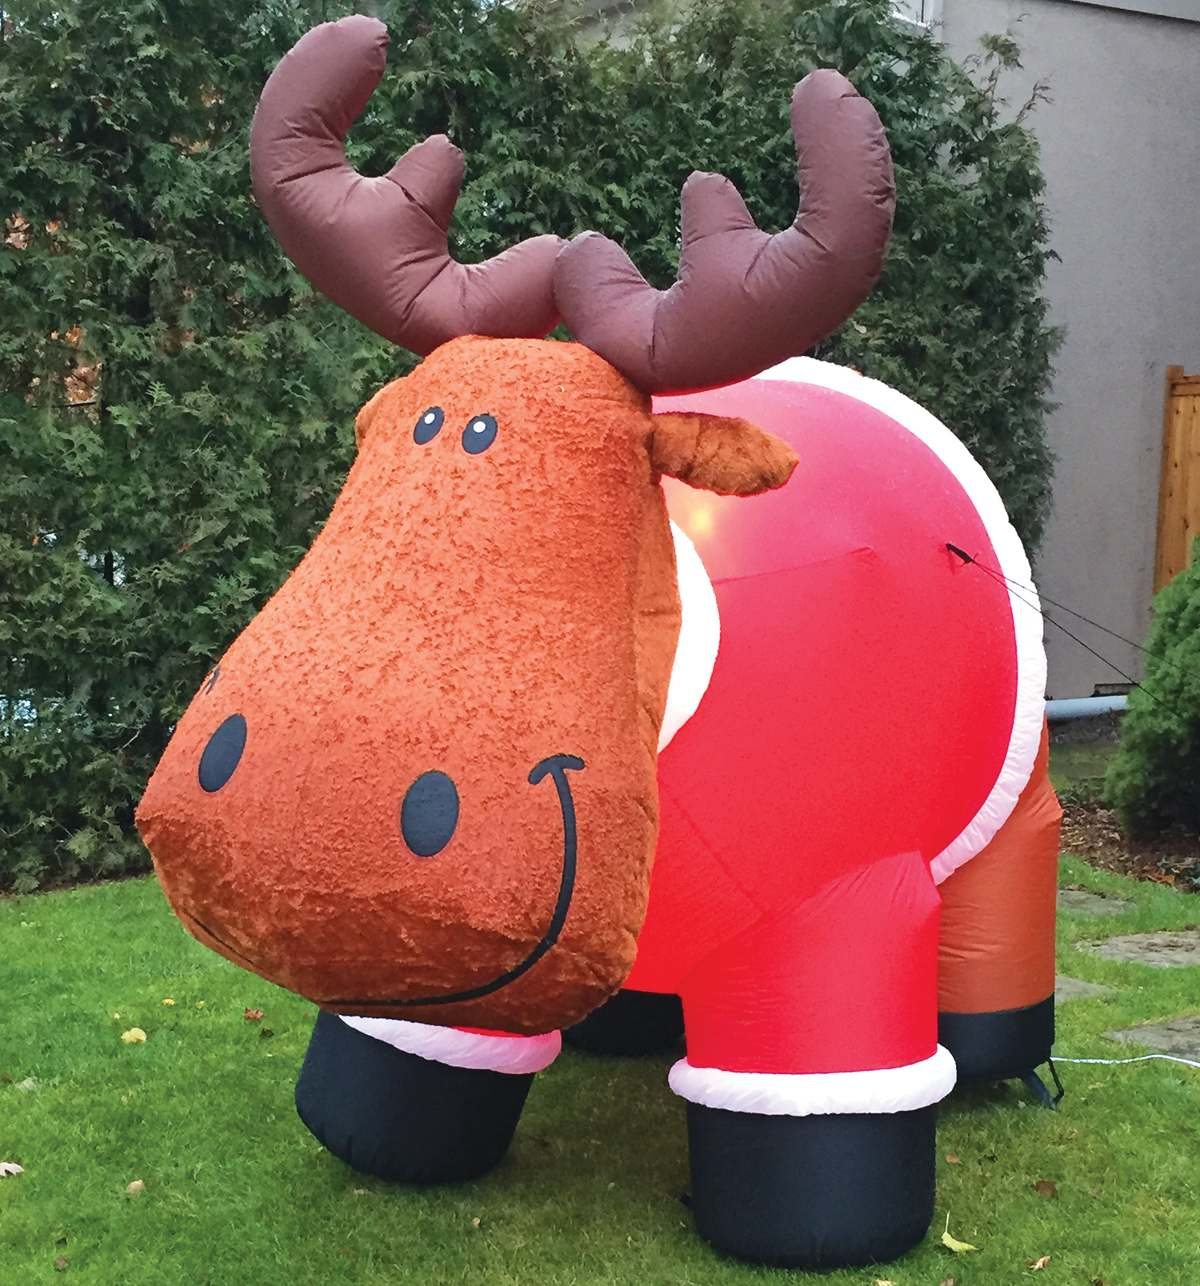 Inflatable moose on lawn. Photo By Robin Dickie.